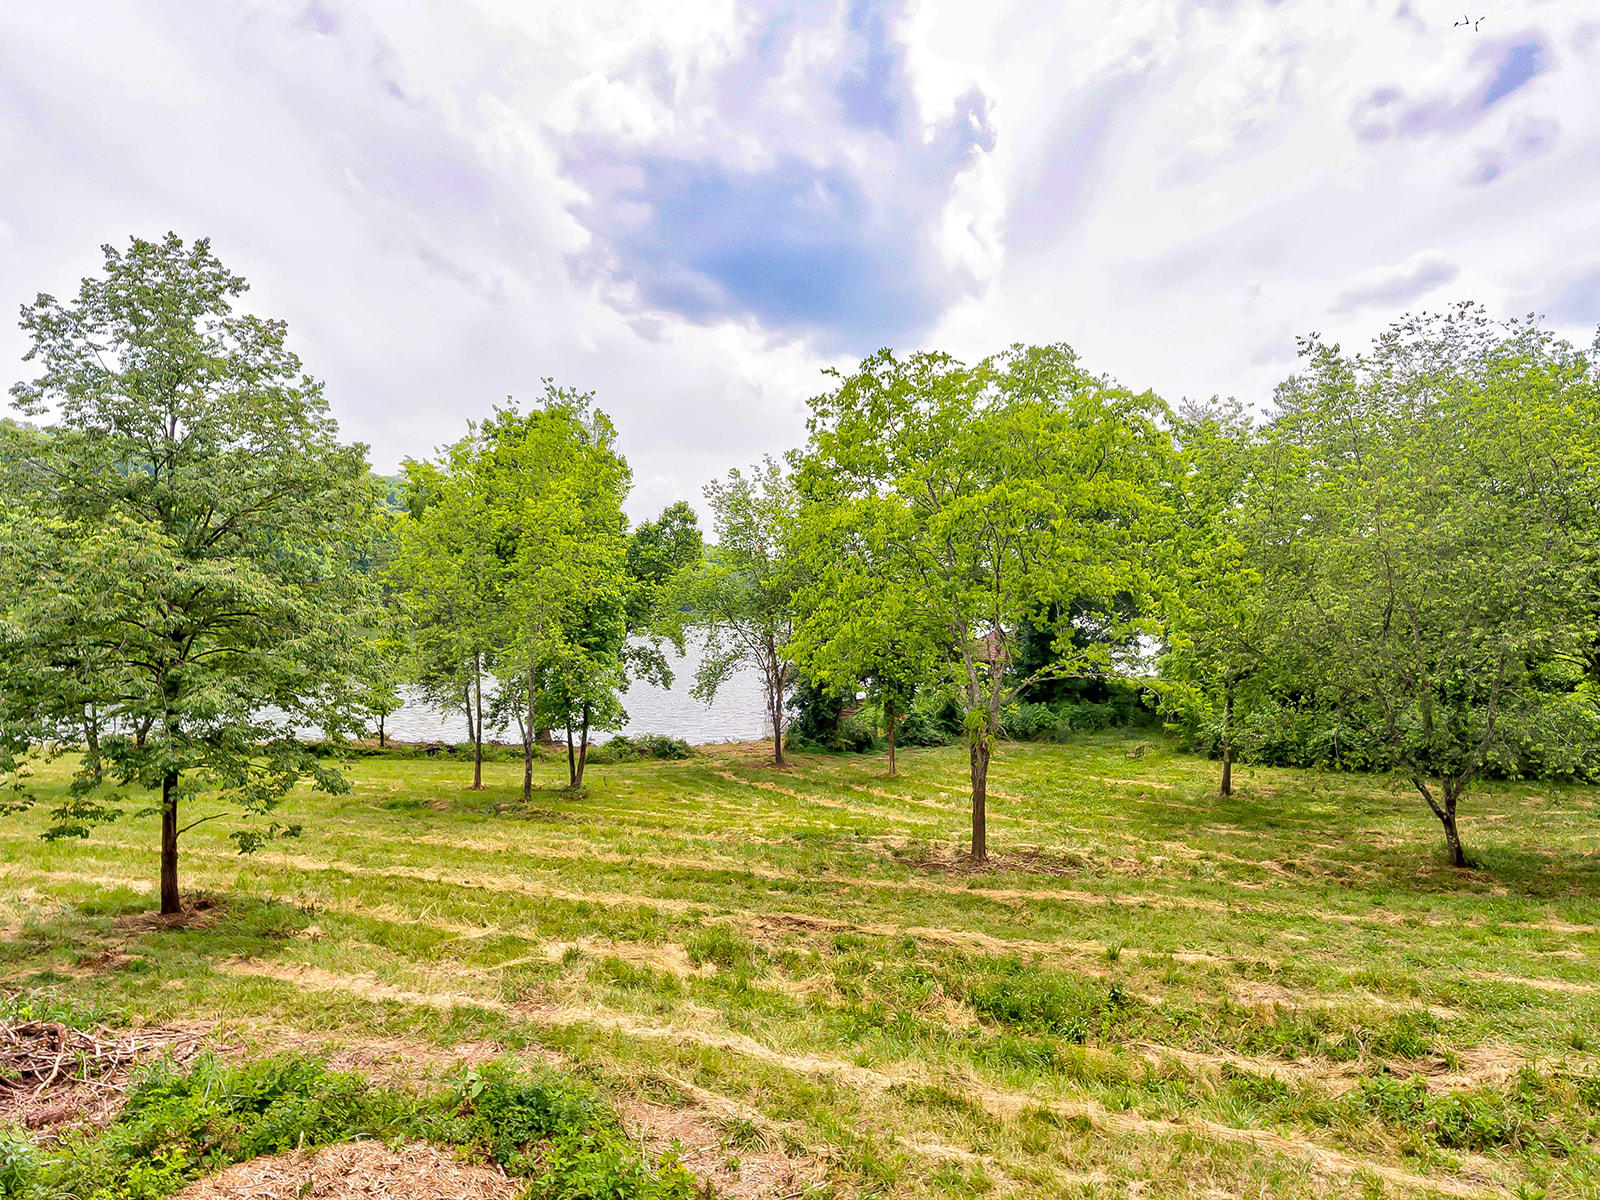 Lot 2 Emory Church Rd: